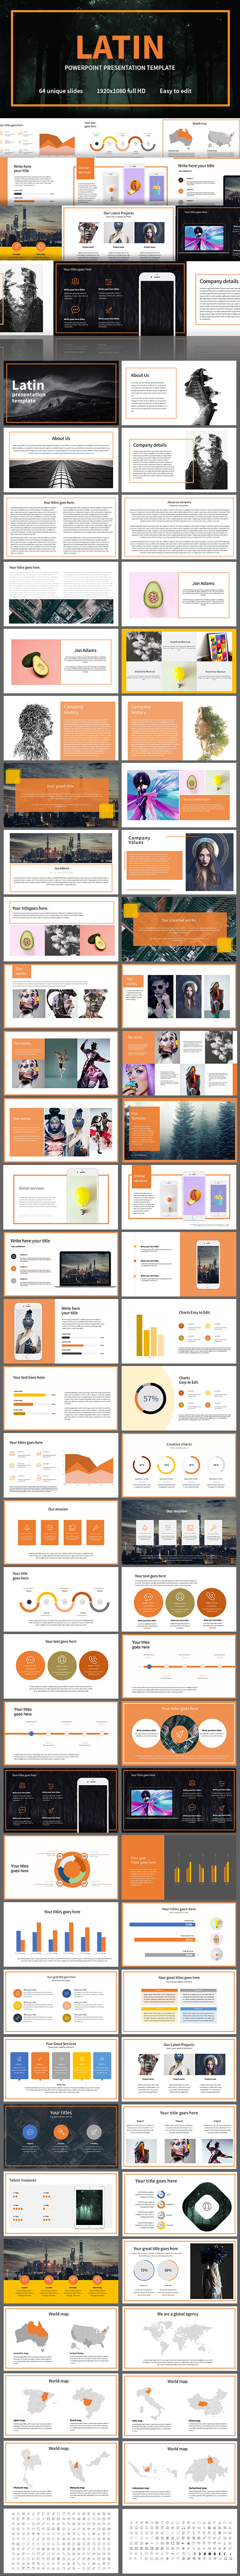 Latin Powerpoint Presentation - PowerPoint Templates Presentation Templates